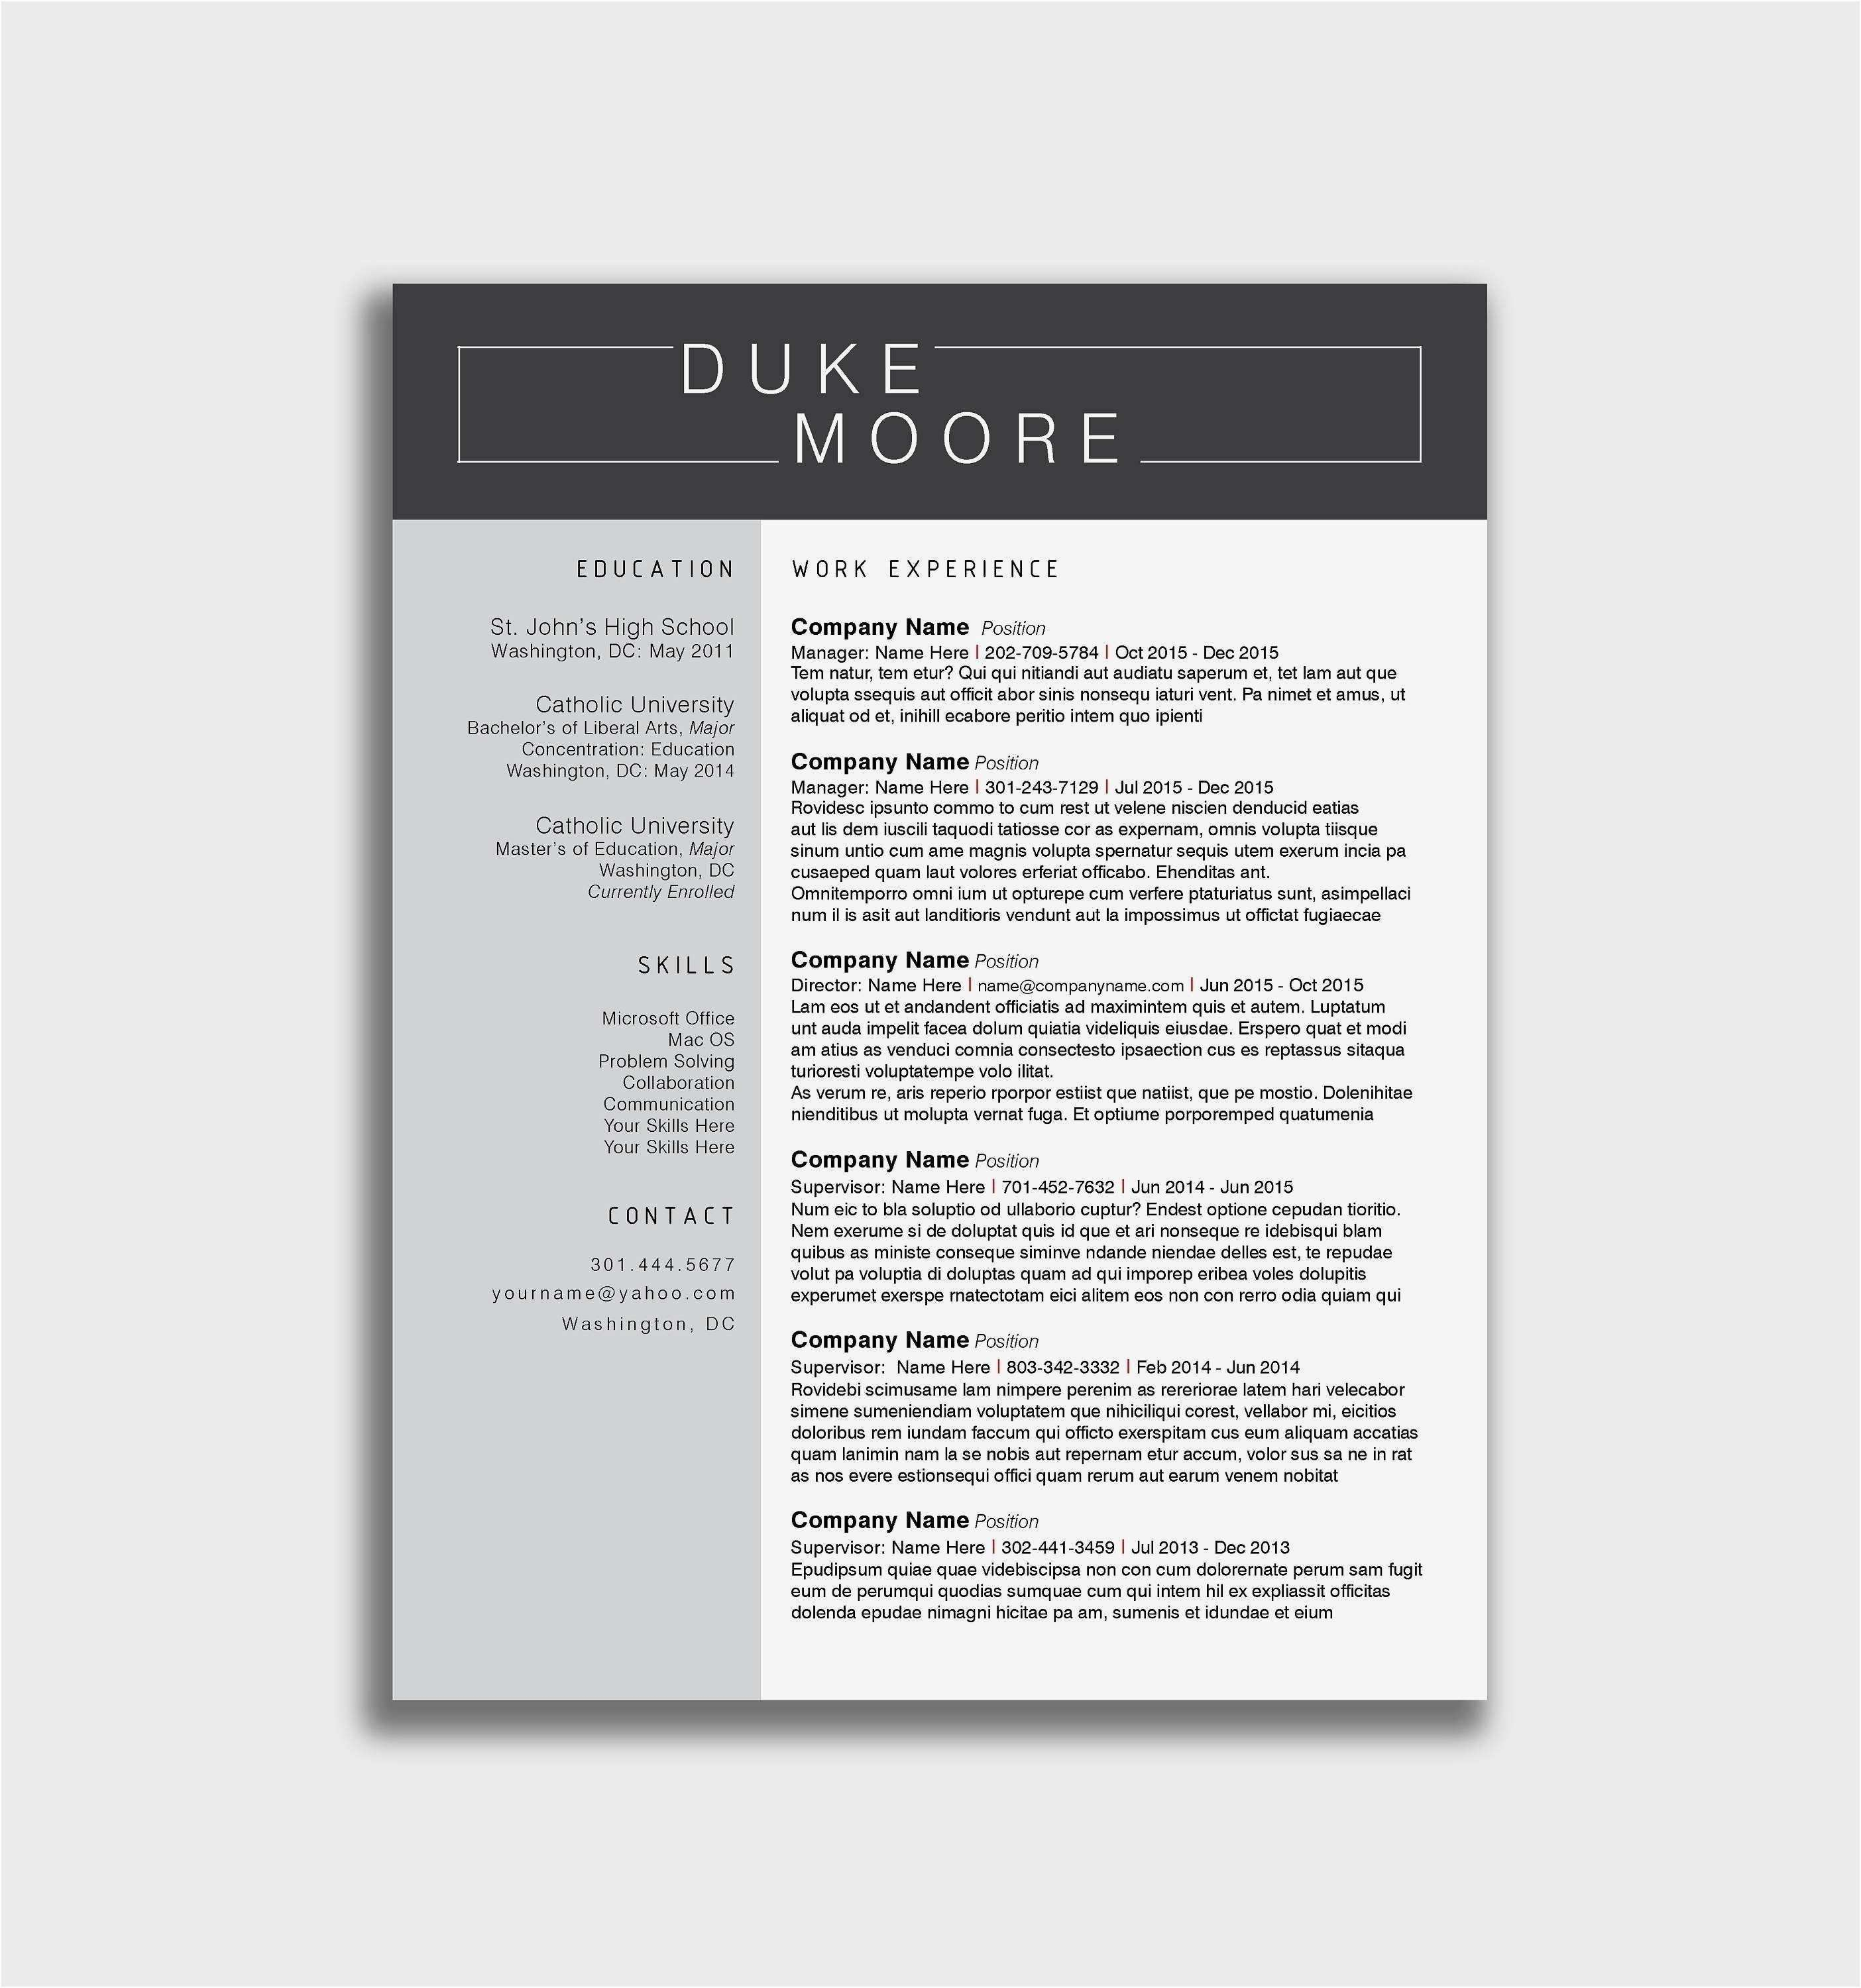 Machinist Resumes - Machinist Resume Example Cnc Machinist Resume Free Cnc Machinist